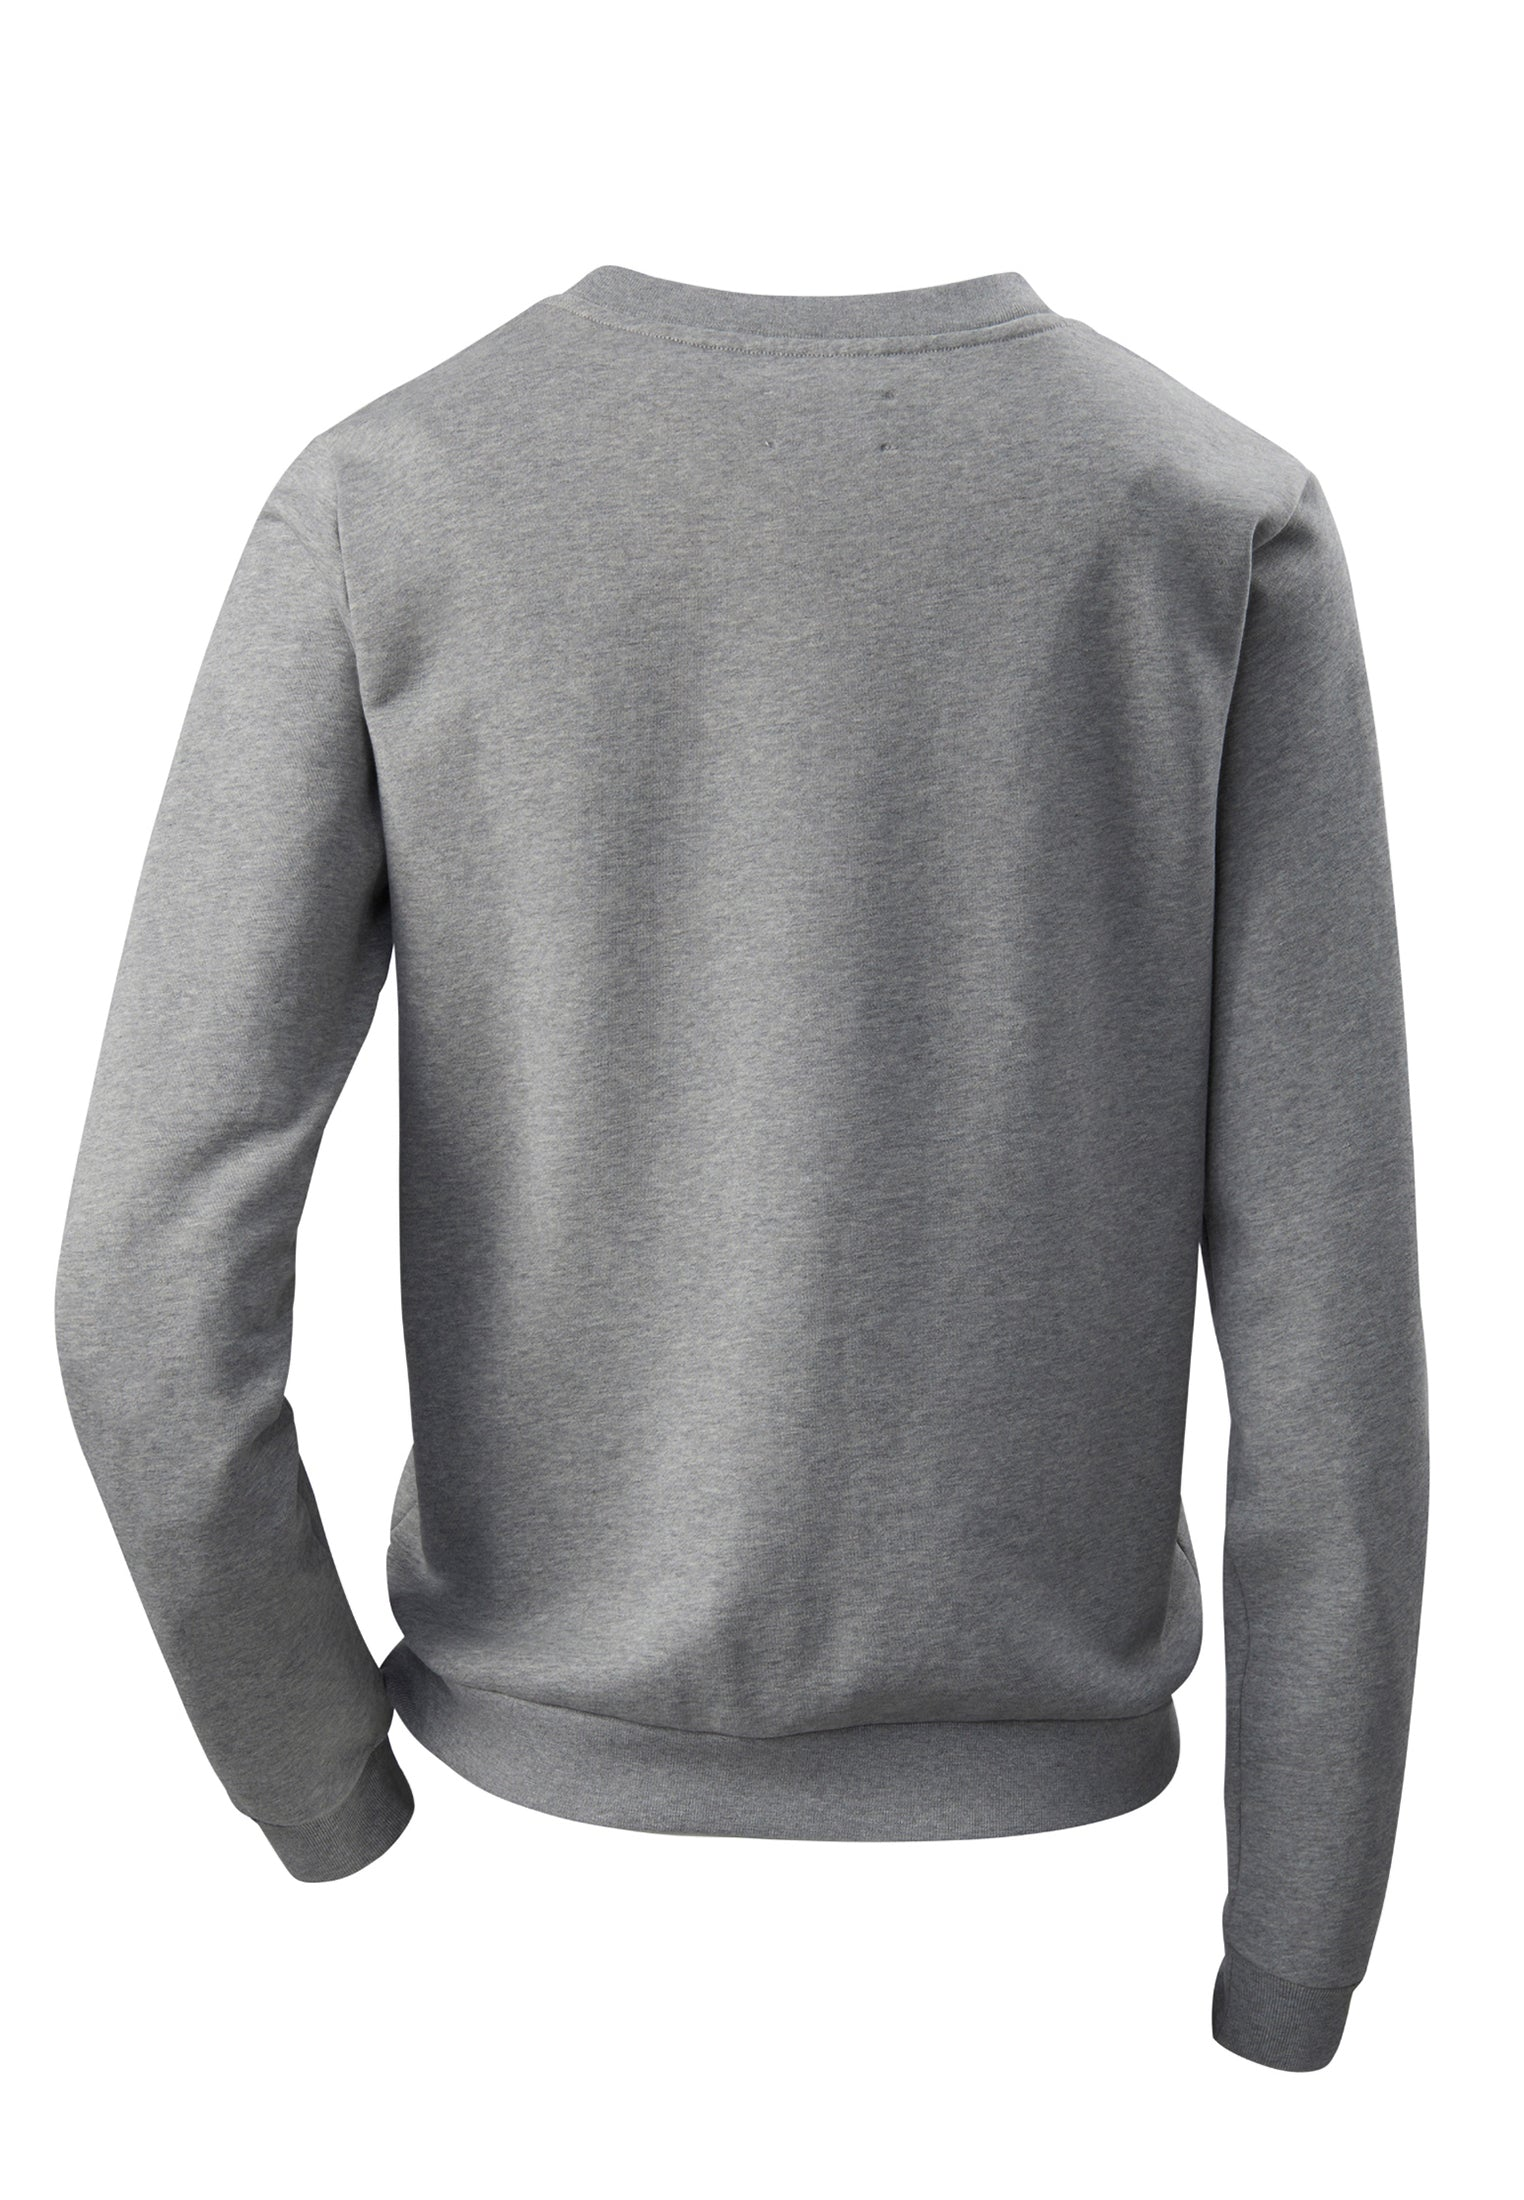 The Sweatshirt Grey